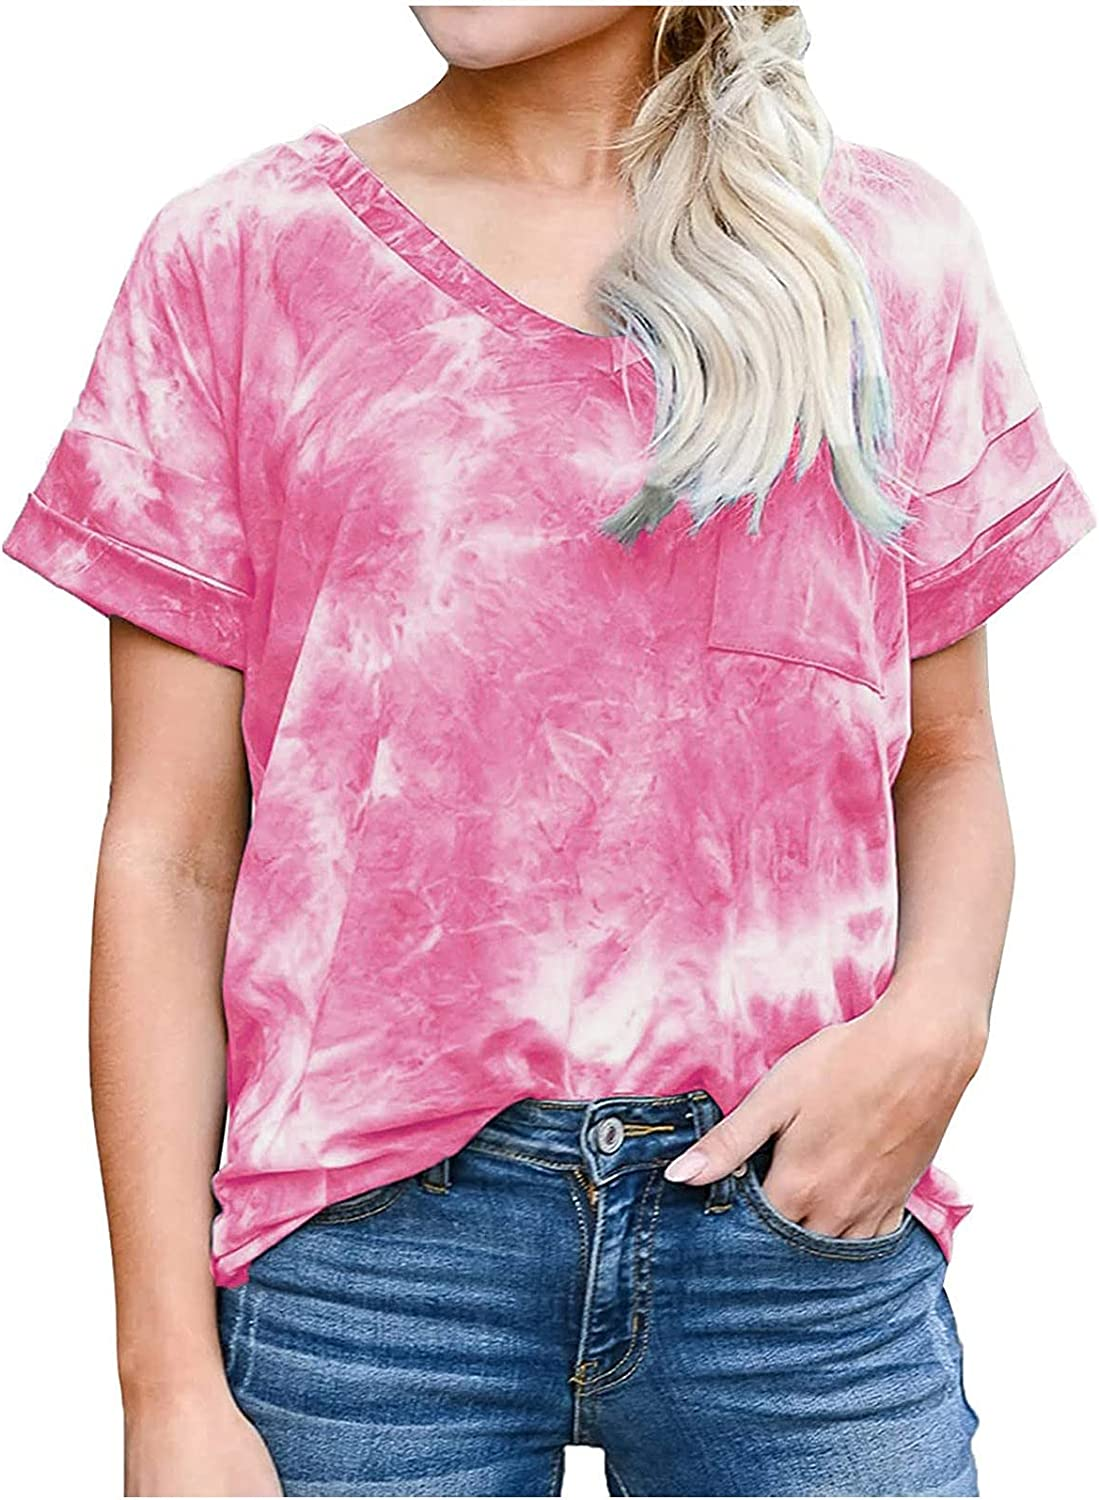 Womens Tie Dye Shirts Gradient Rainbow Loose Cheap mail order shopping Max 50% OFF Casual Top Summer F